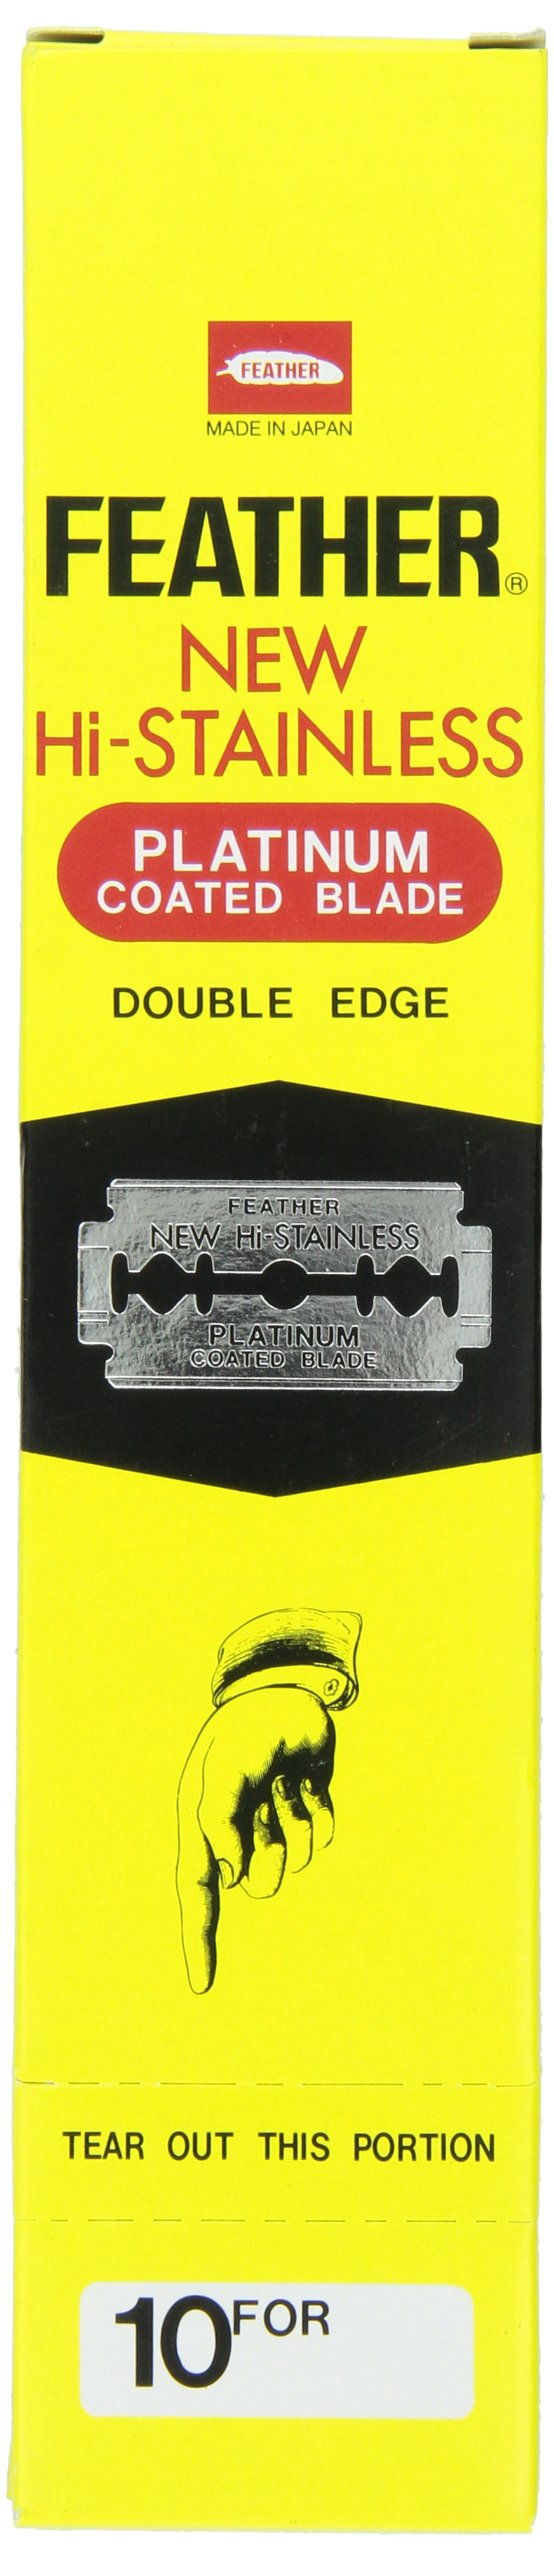 Feather Razor Blades New Hi-Stainless Double Edge, 200 Count